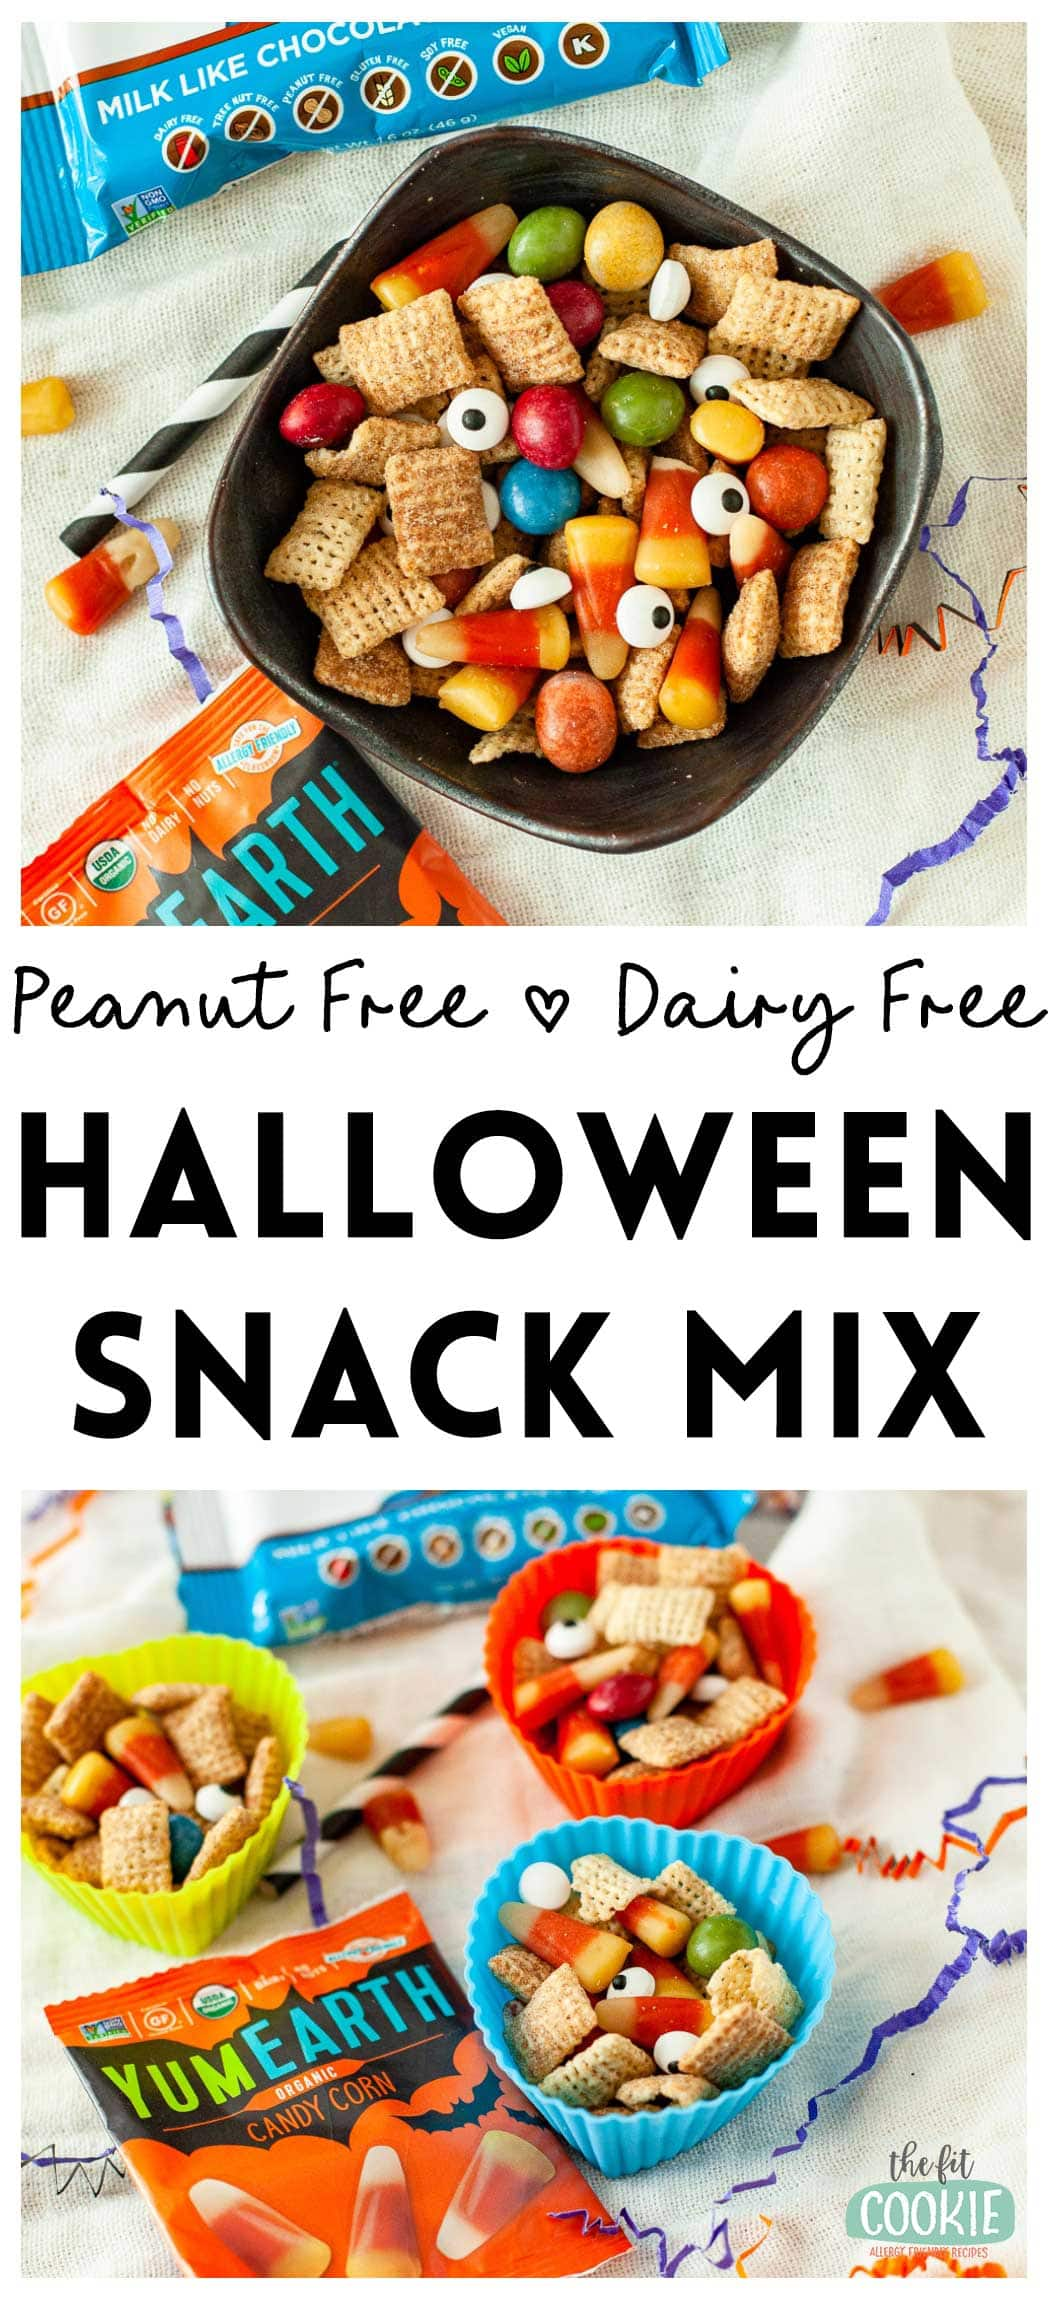 photo collage of allergy friendly halloween snack mix